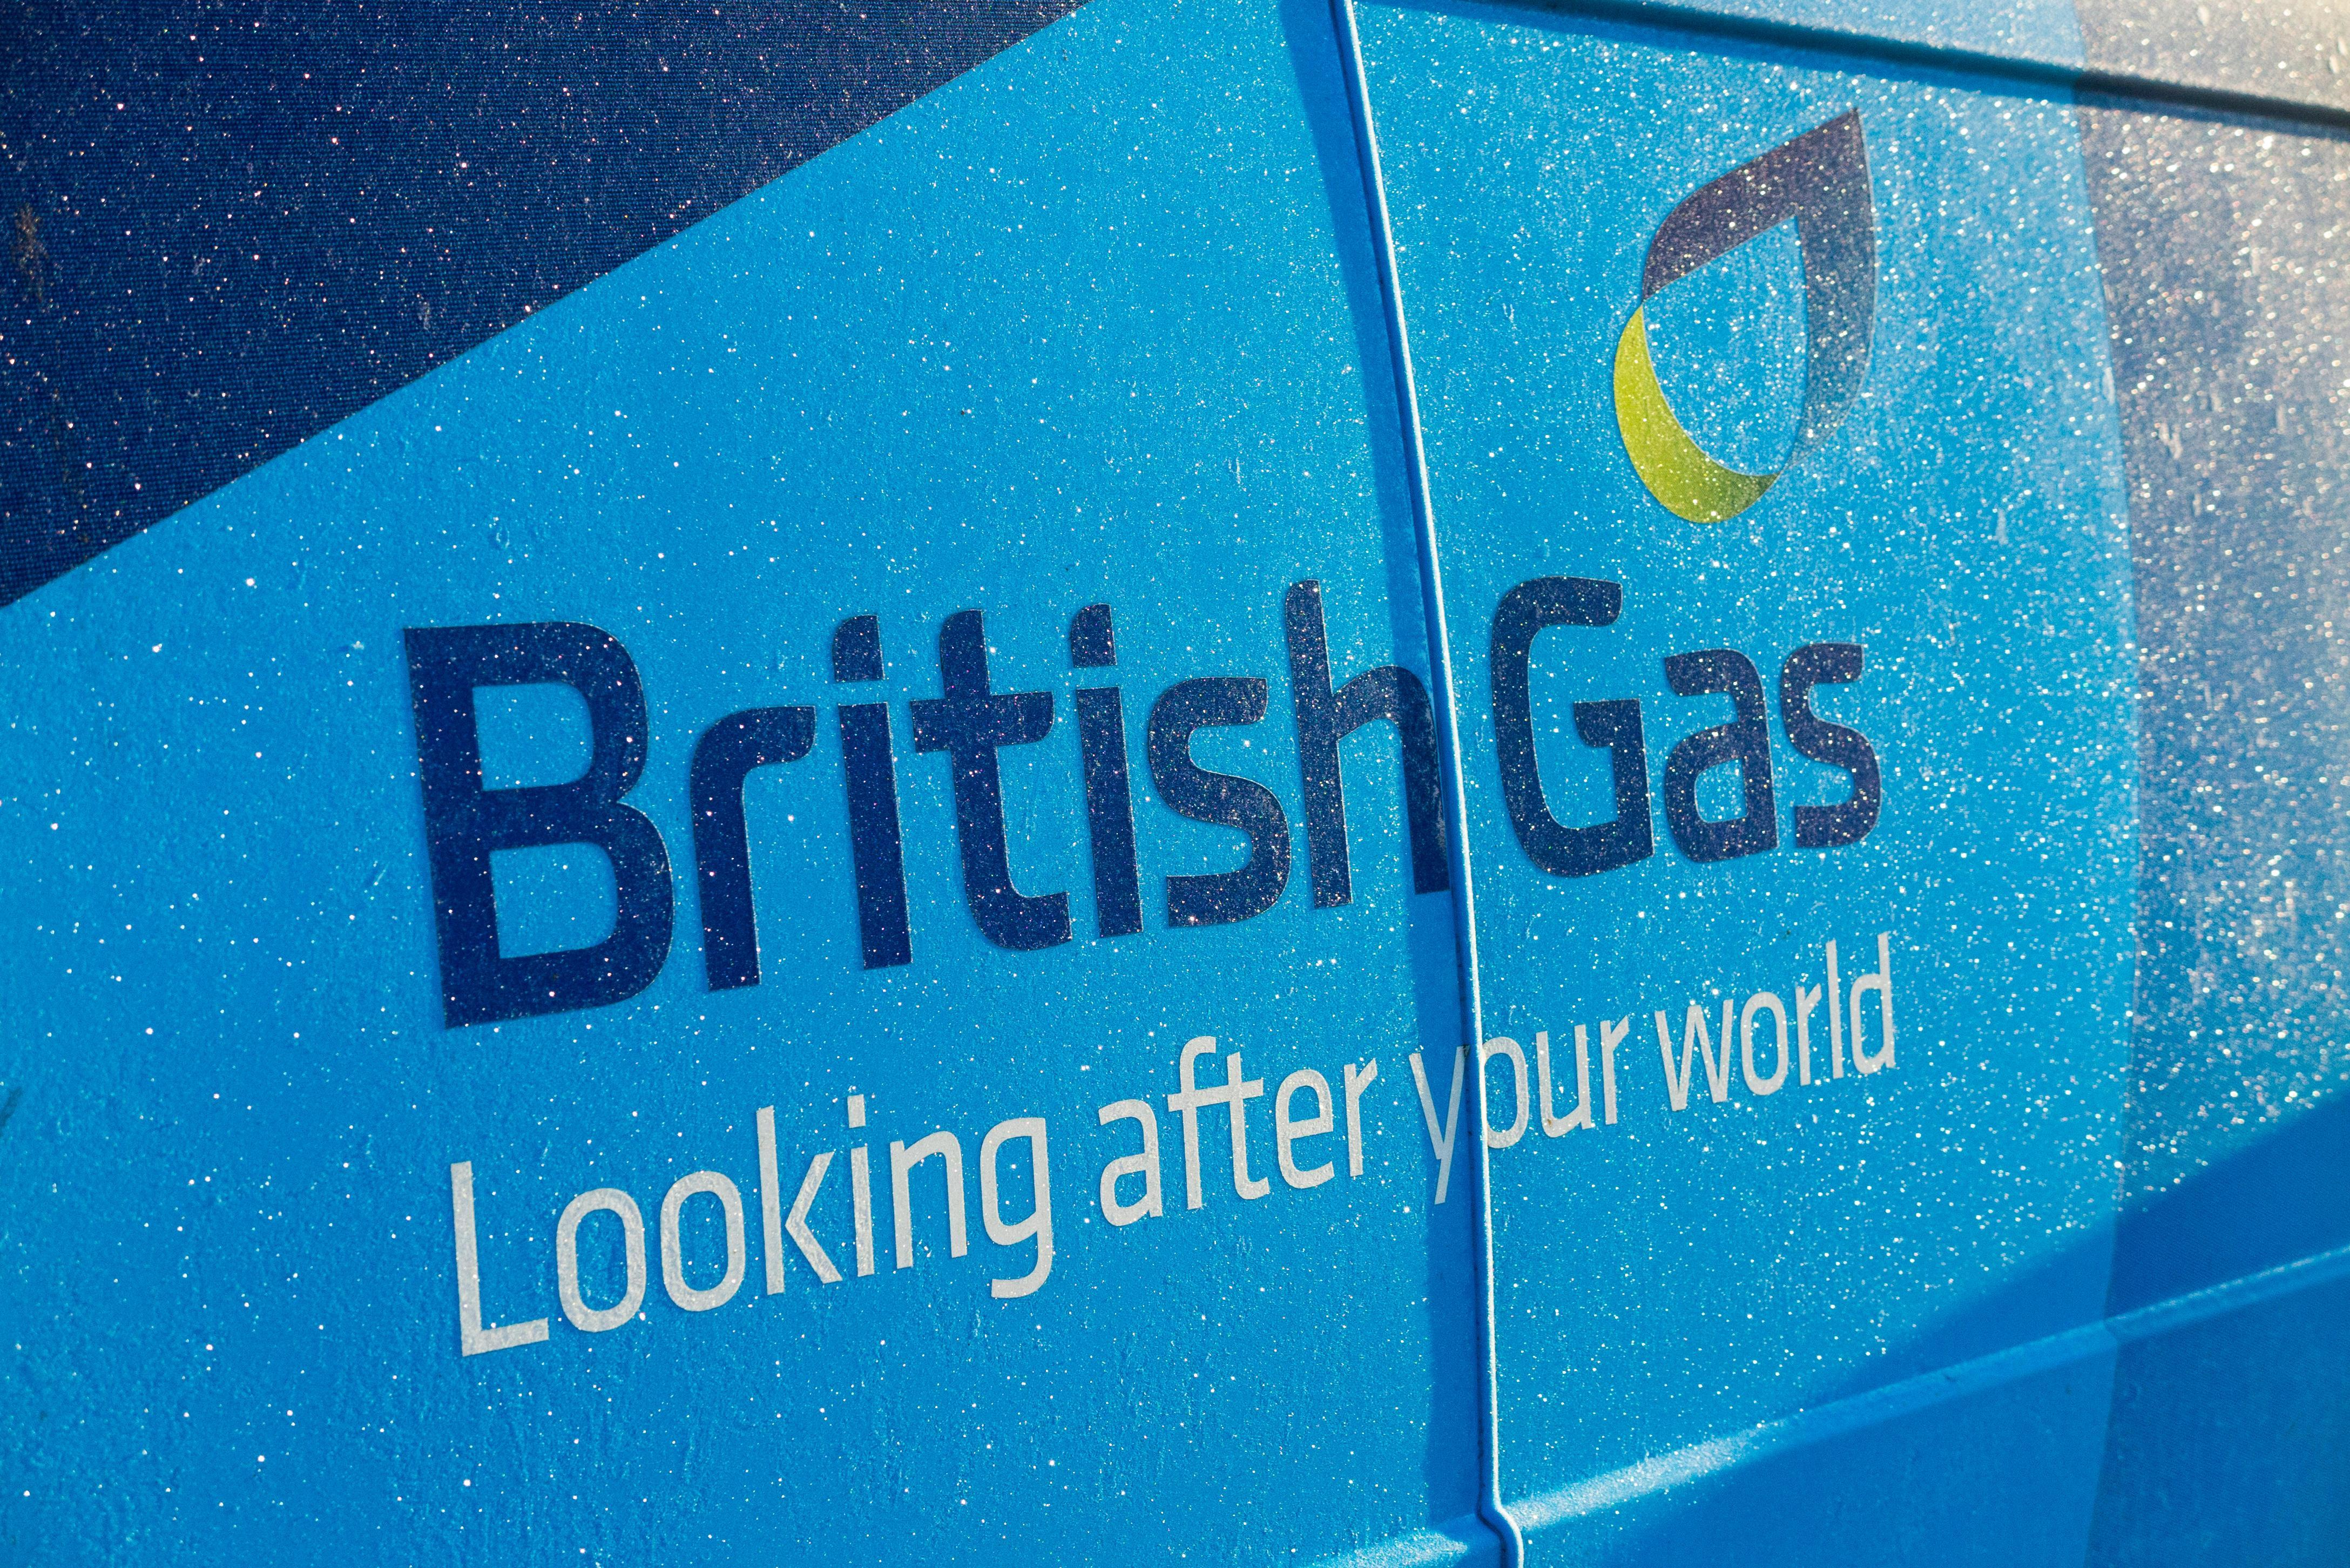 British Gas owners Centrica to cut 4,000 jobs in the next two years to cut costs